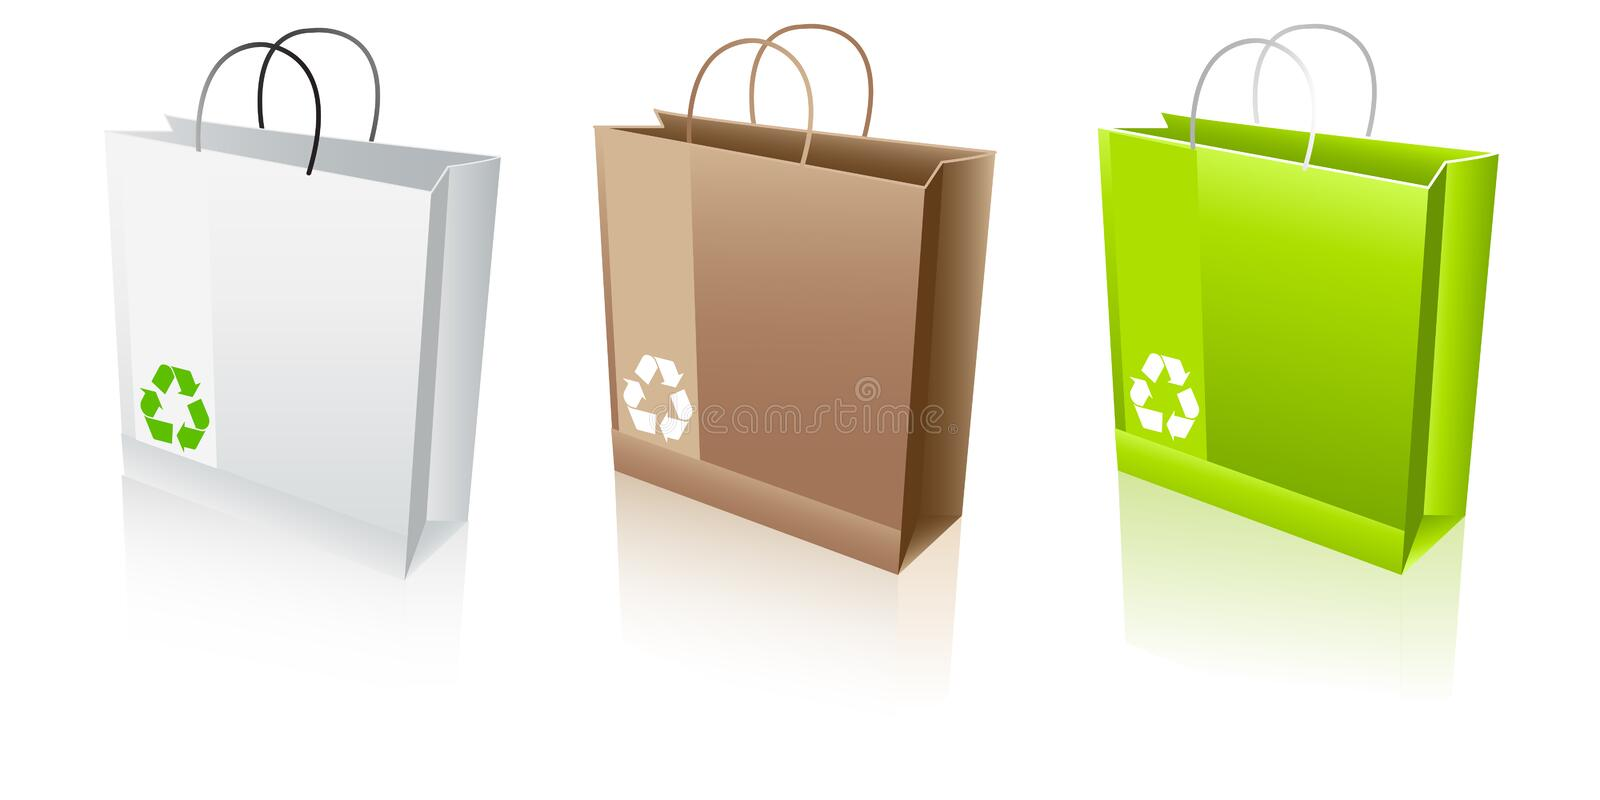 Recycle bags. Shopping bags with recycle symbol stock illustration